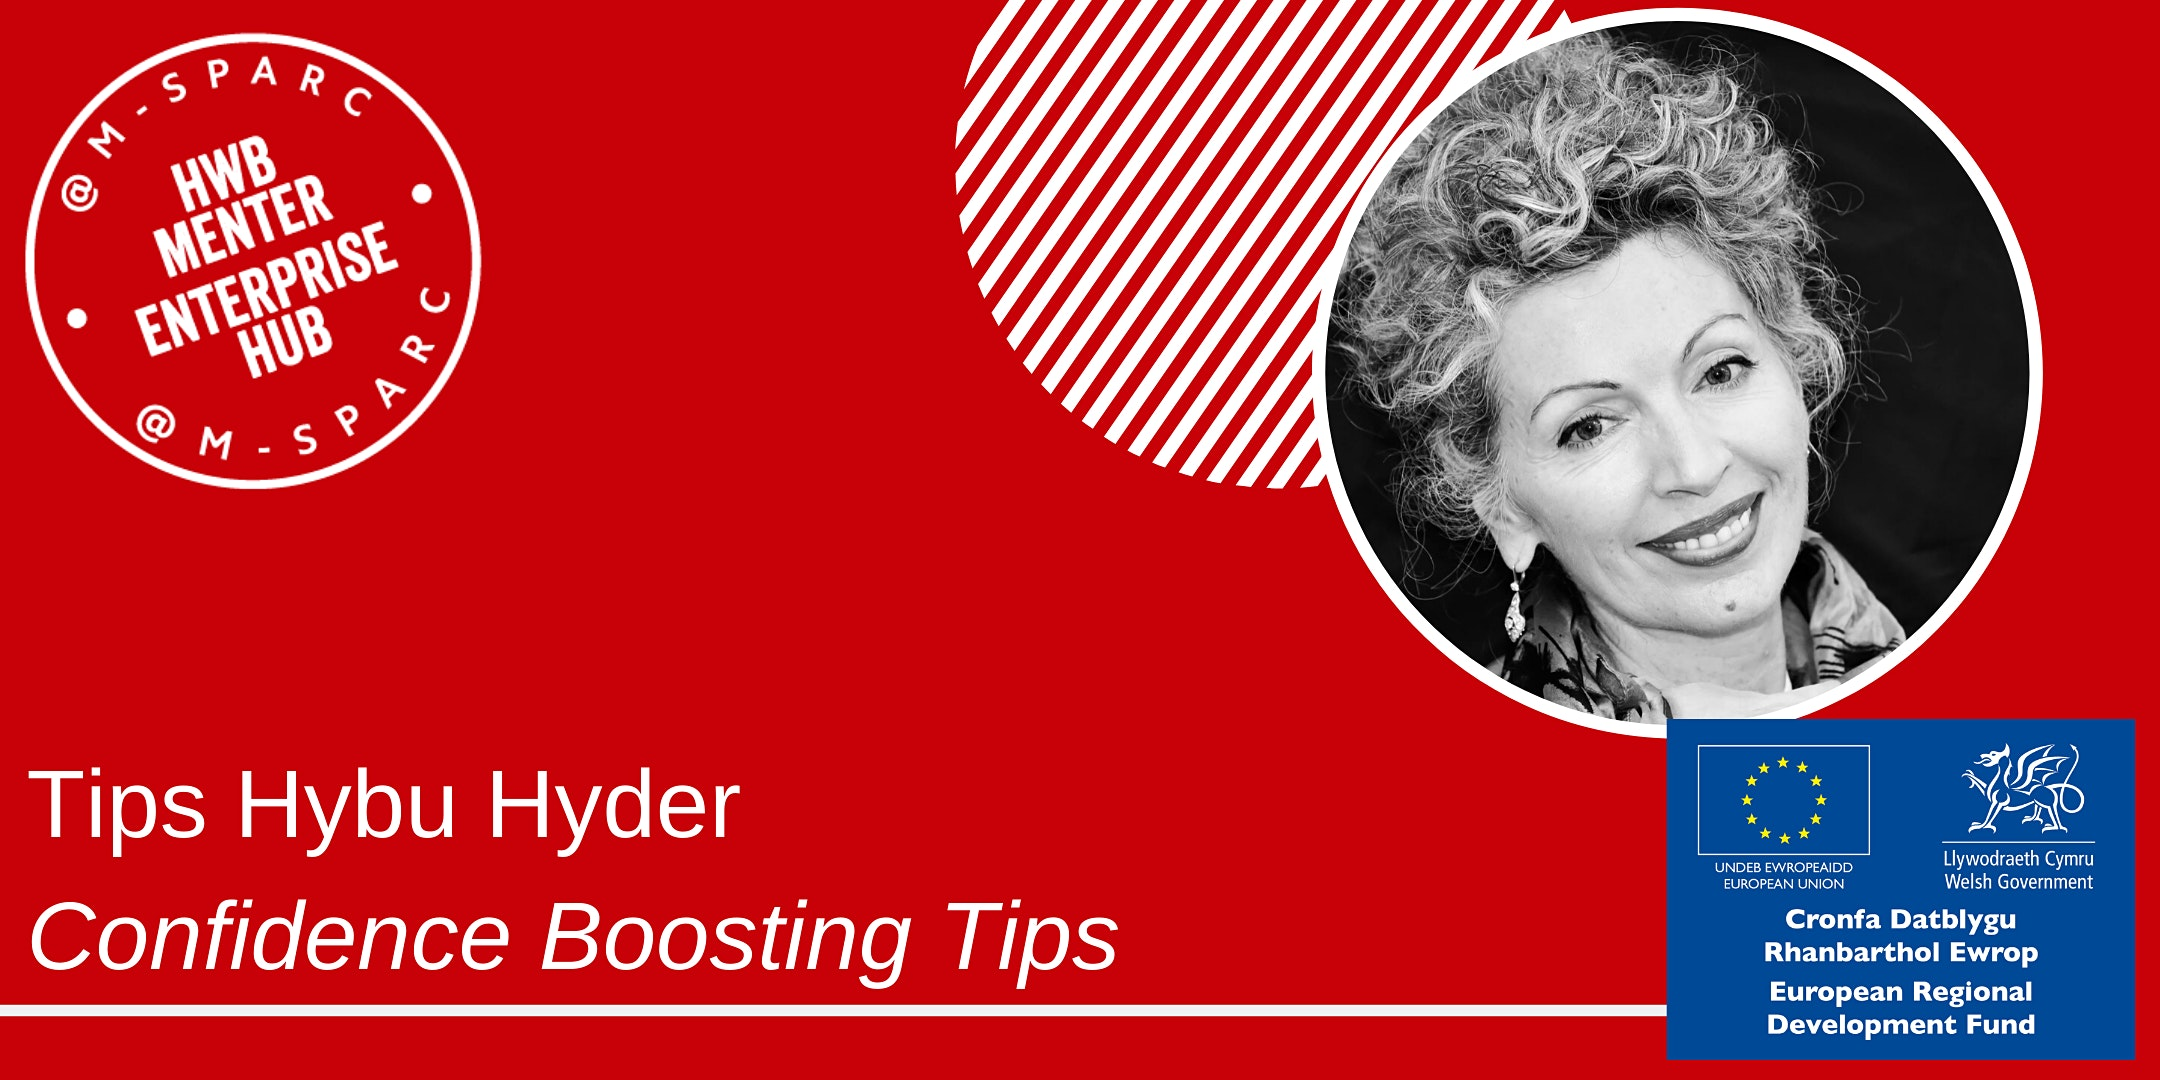 Tips Hybu Hyder / Confidence Boosting Tips